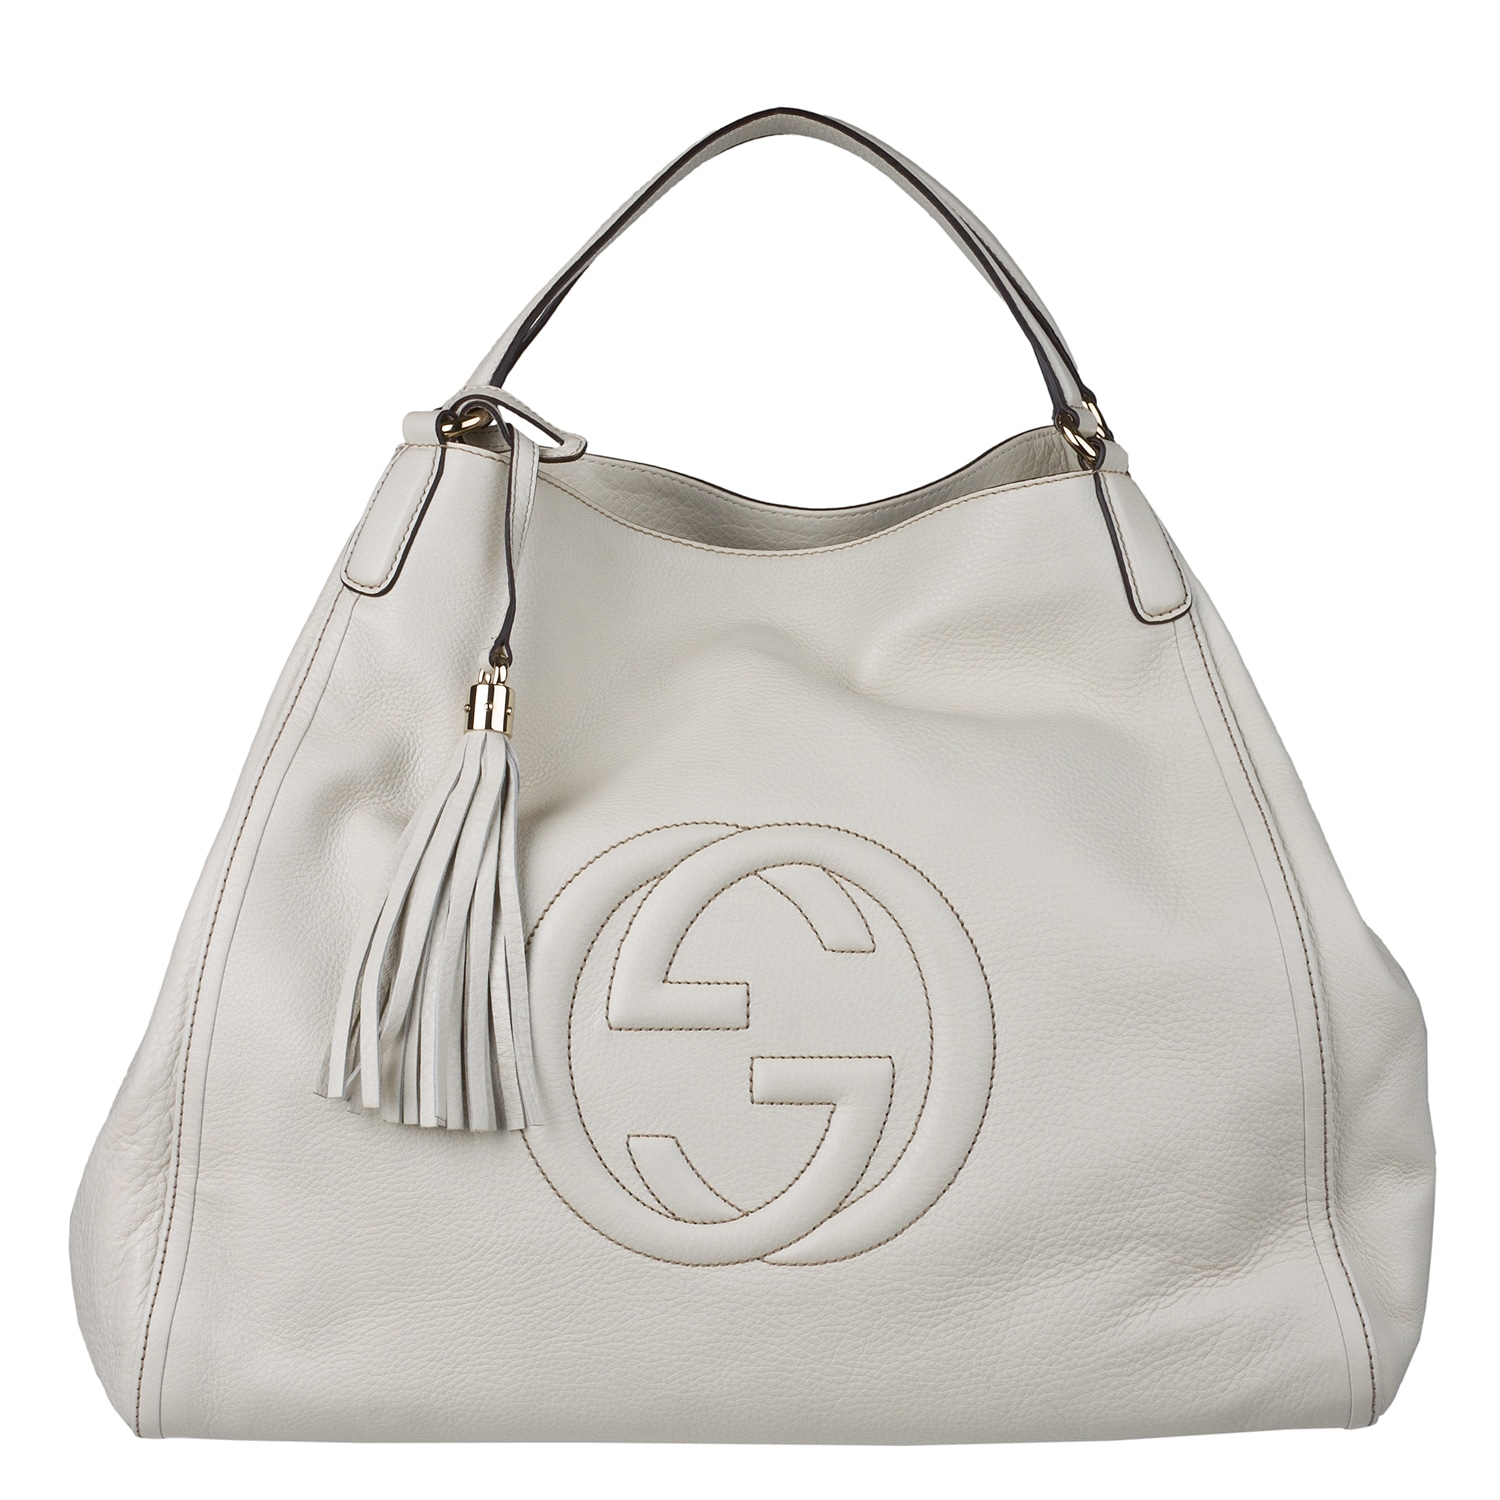 Gucci White Leather Medium Soho Hobo Bag Free Shipping Today